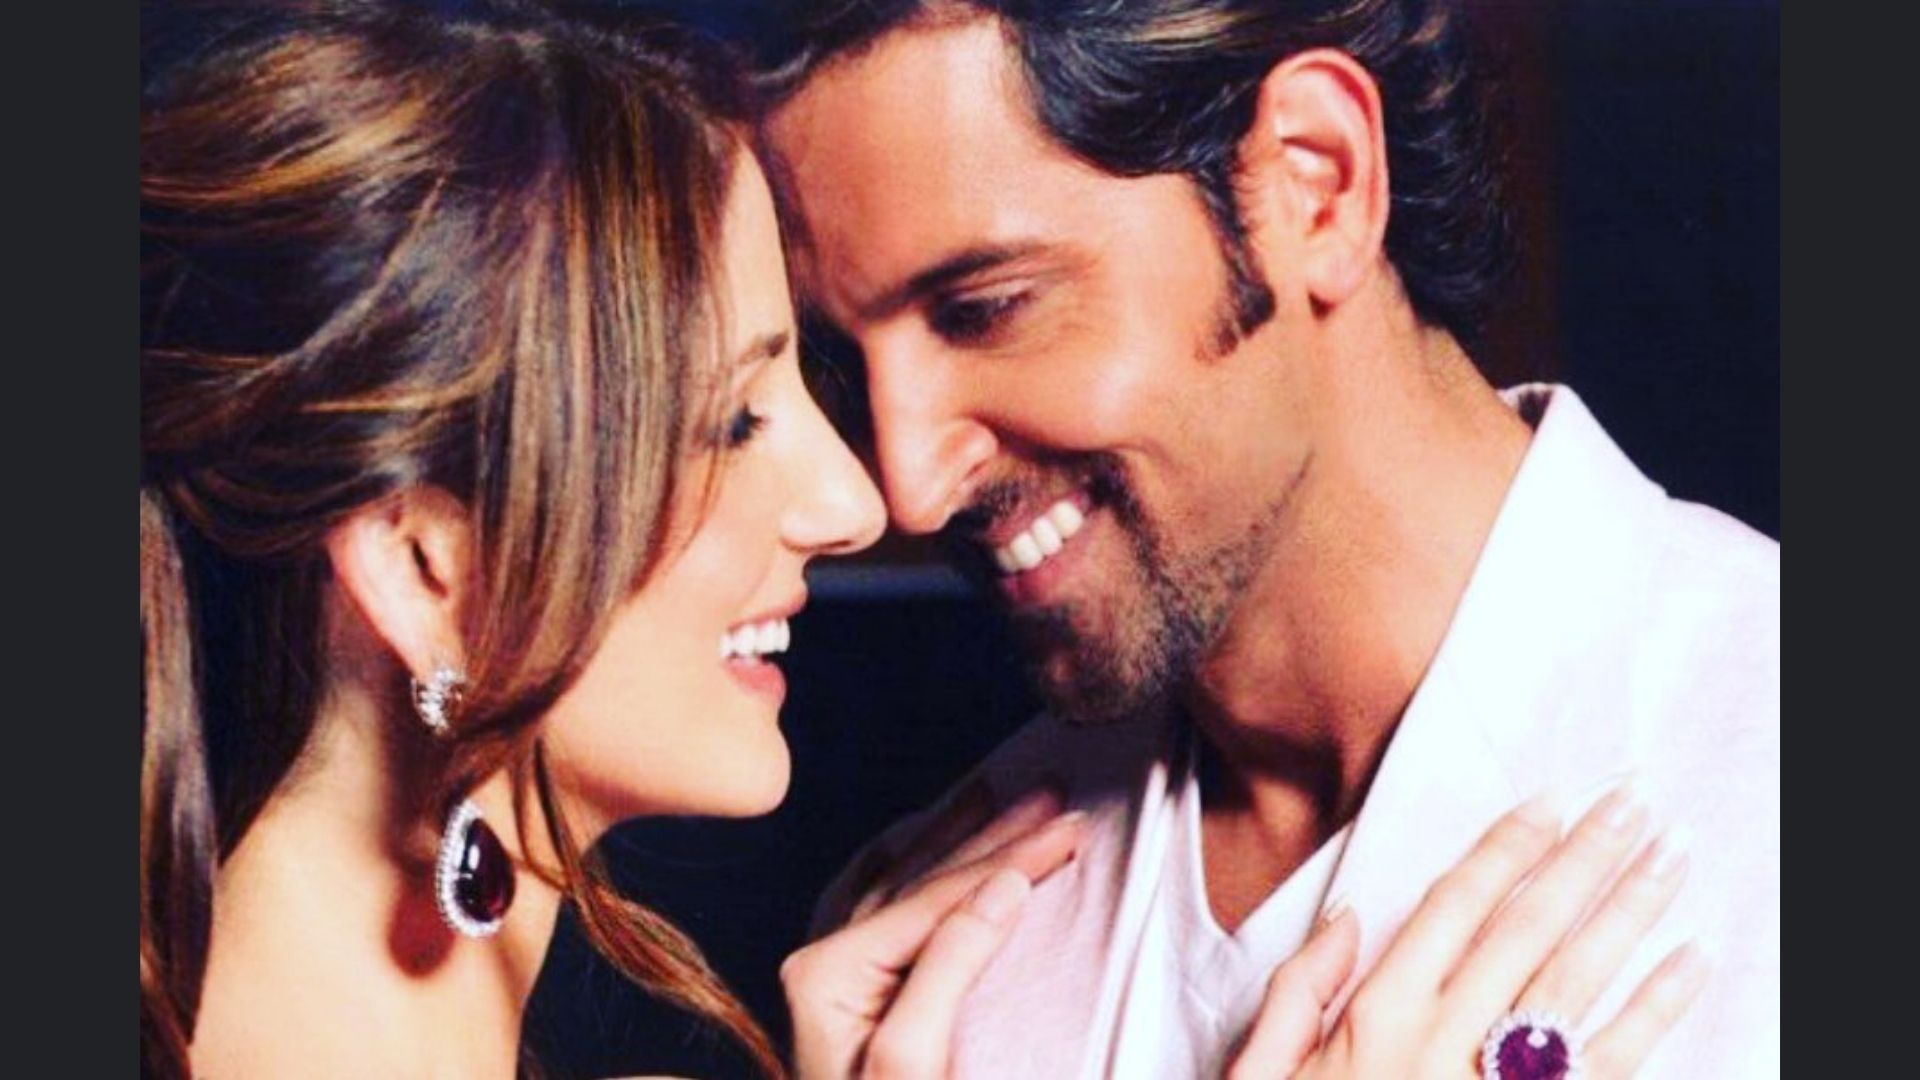 Hrithik Roshan Comments 'Looking Cool' On Former Wife Sussanne Khan's  Latest BTS Video